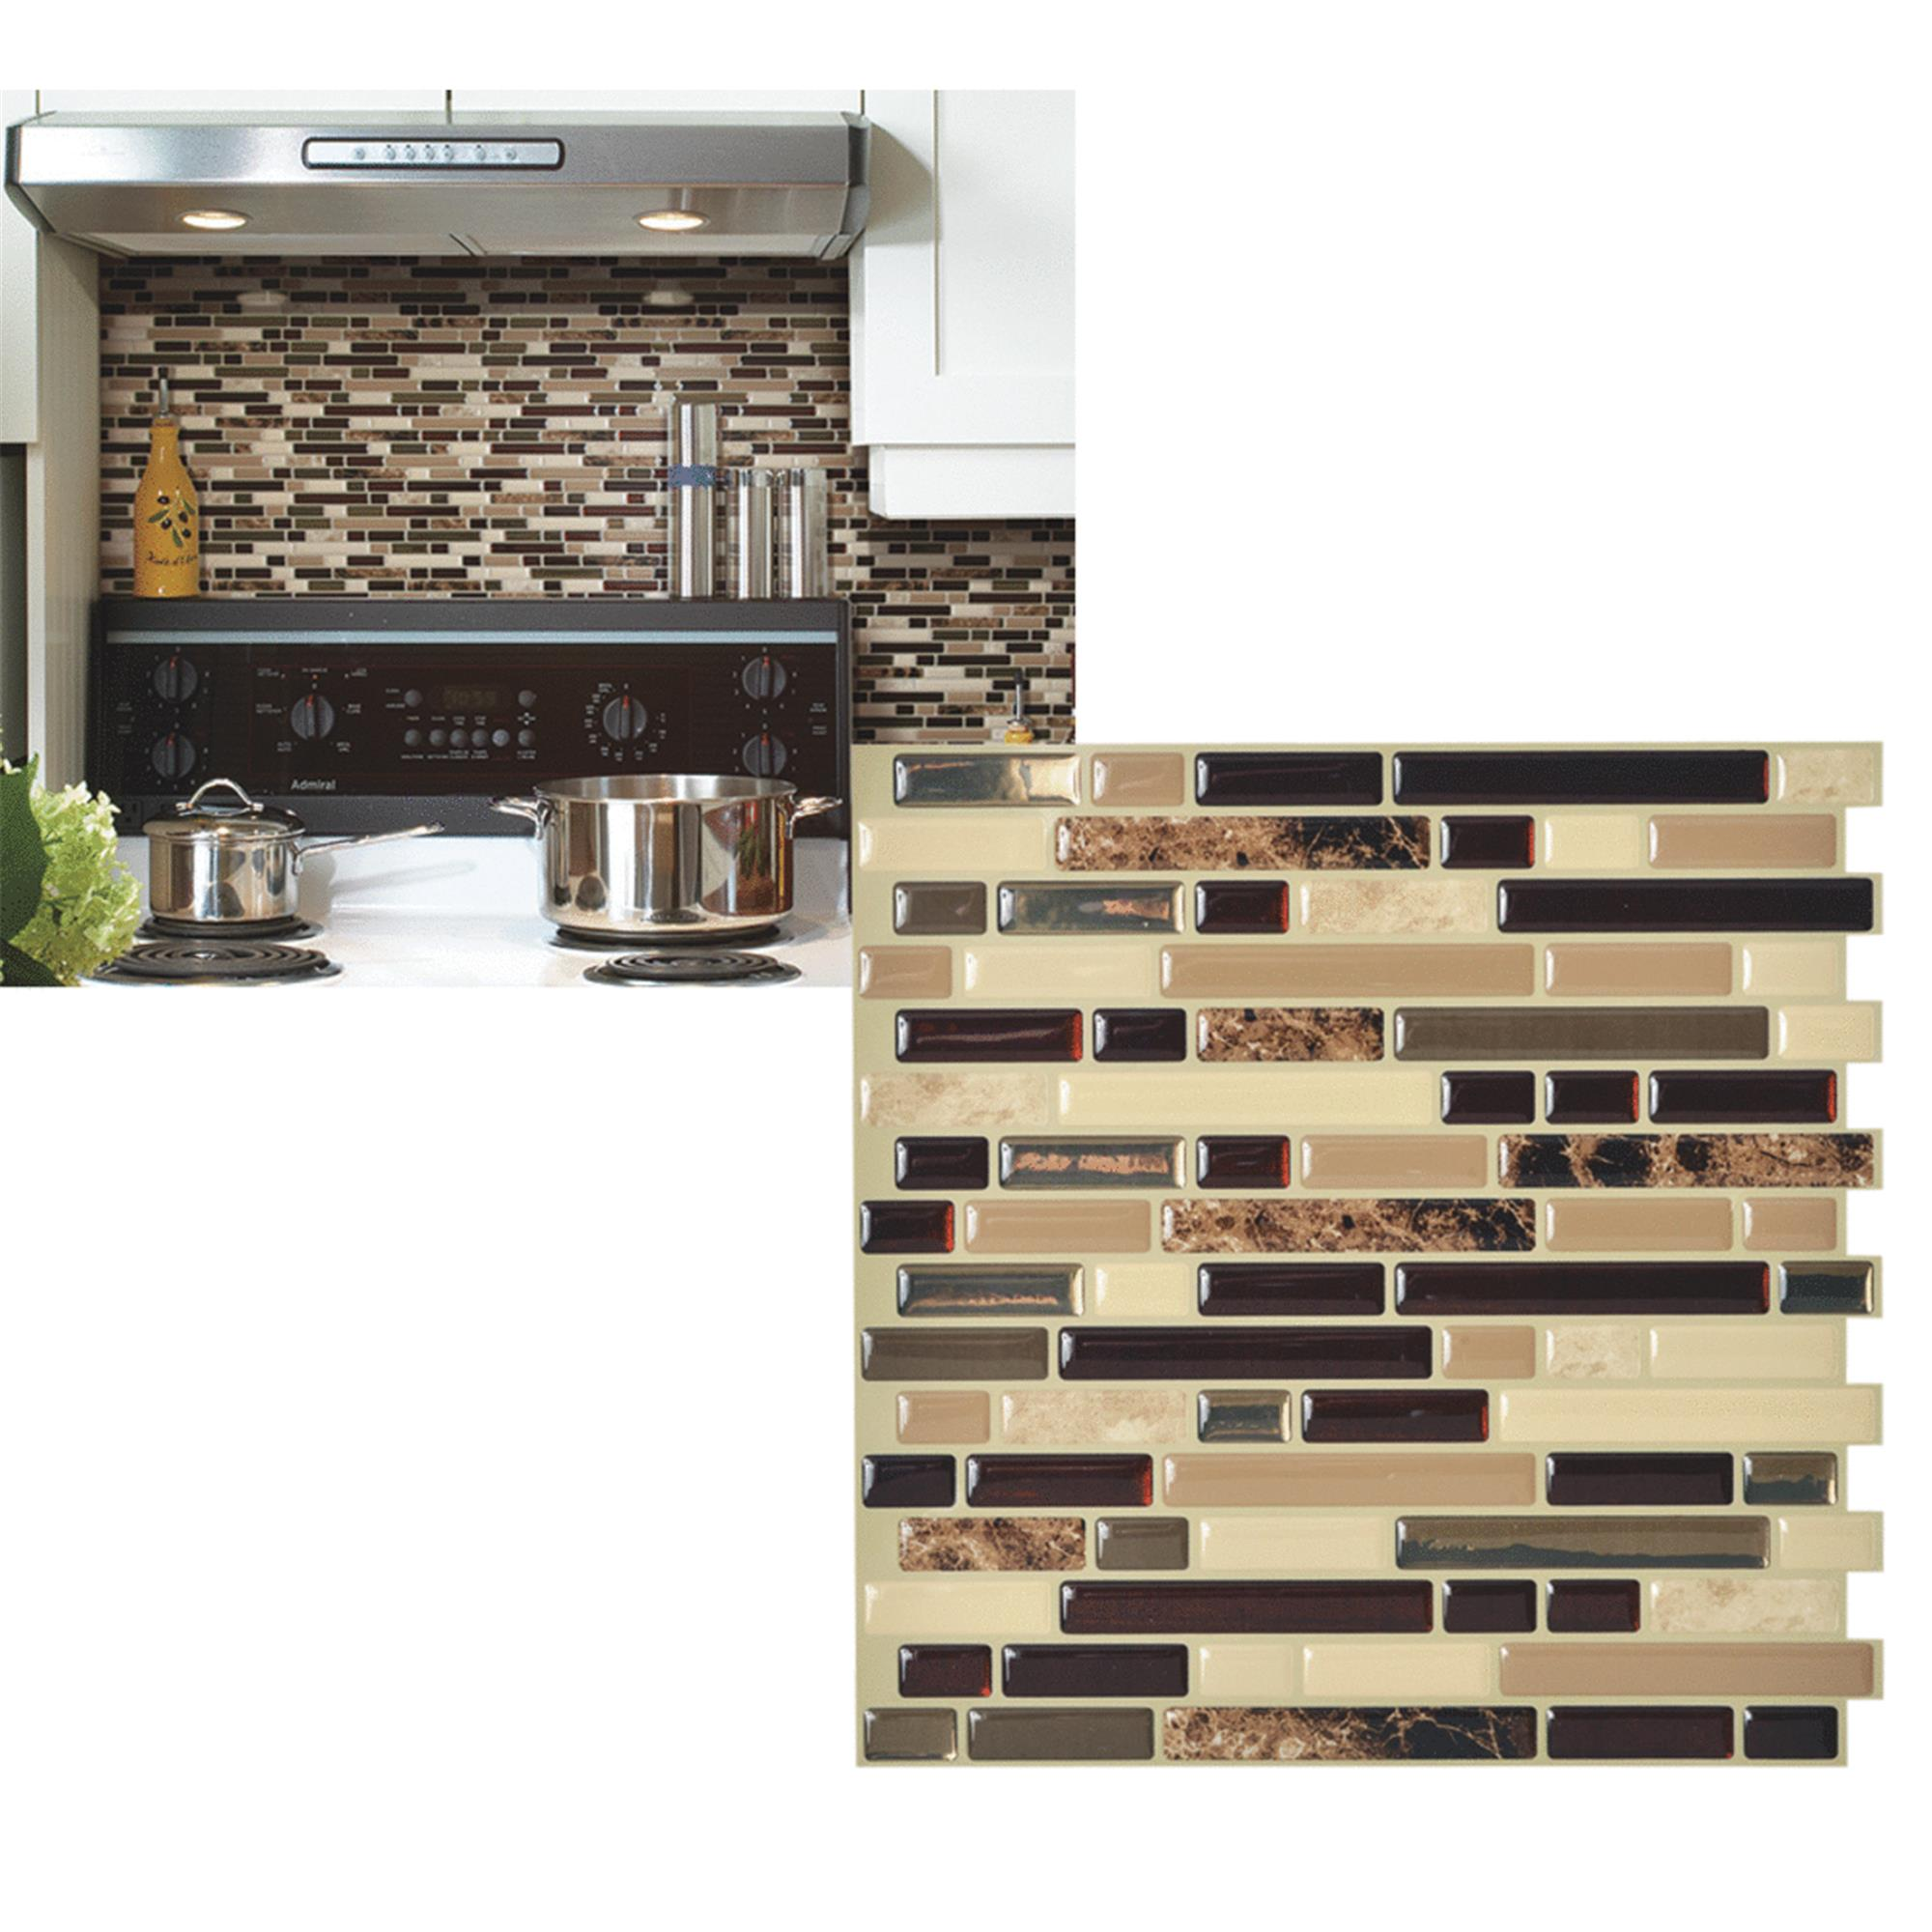 Smart Tiles Original Peel Stick Backsplash Wall Tile Walmartcom